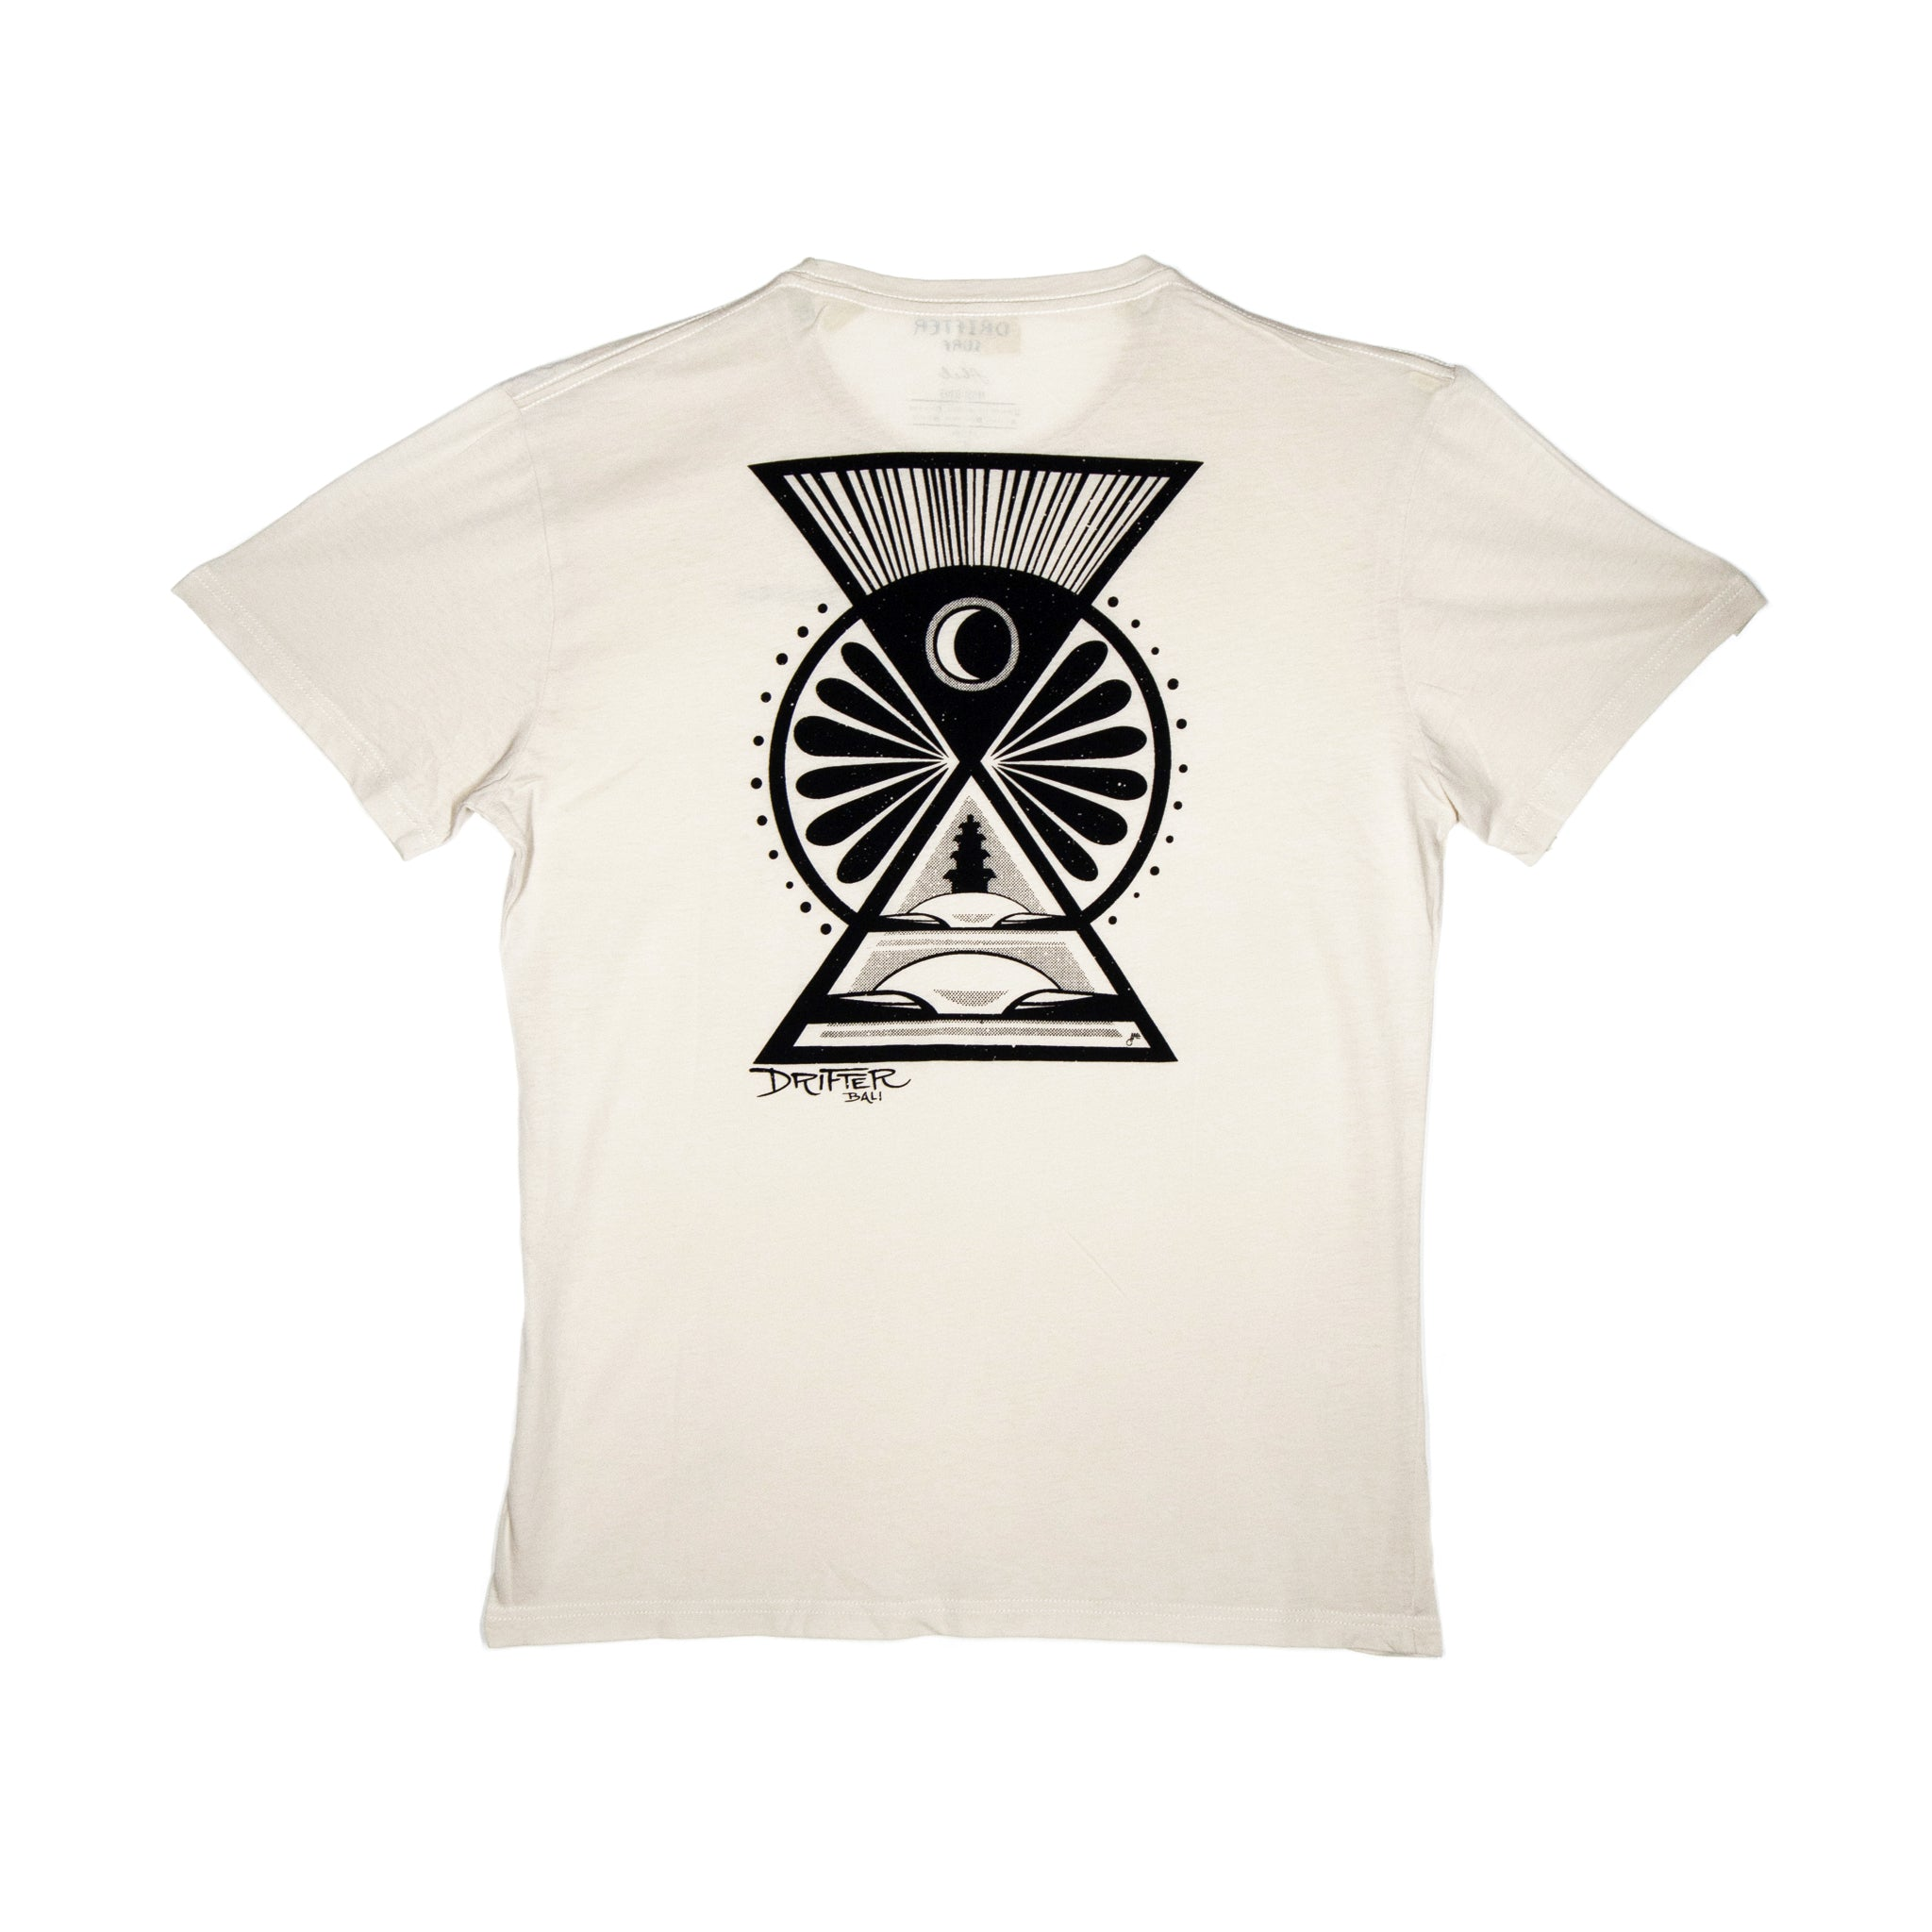 MOON TEMPLE T-SHIRT